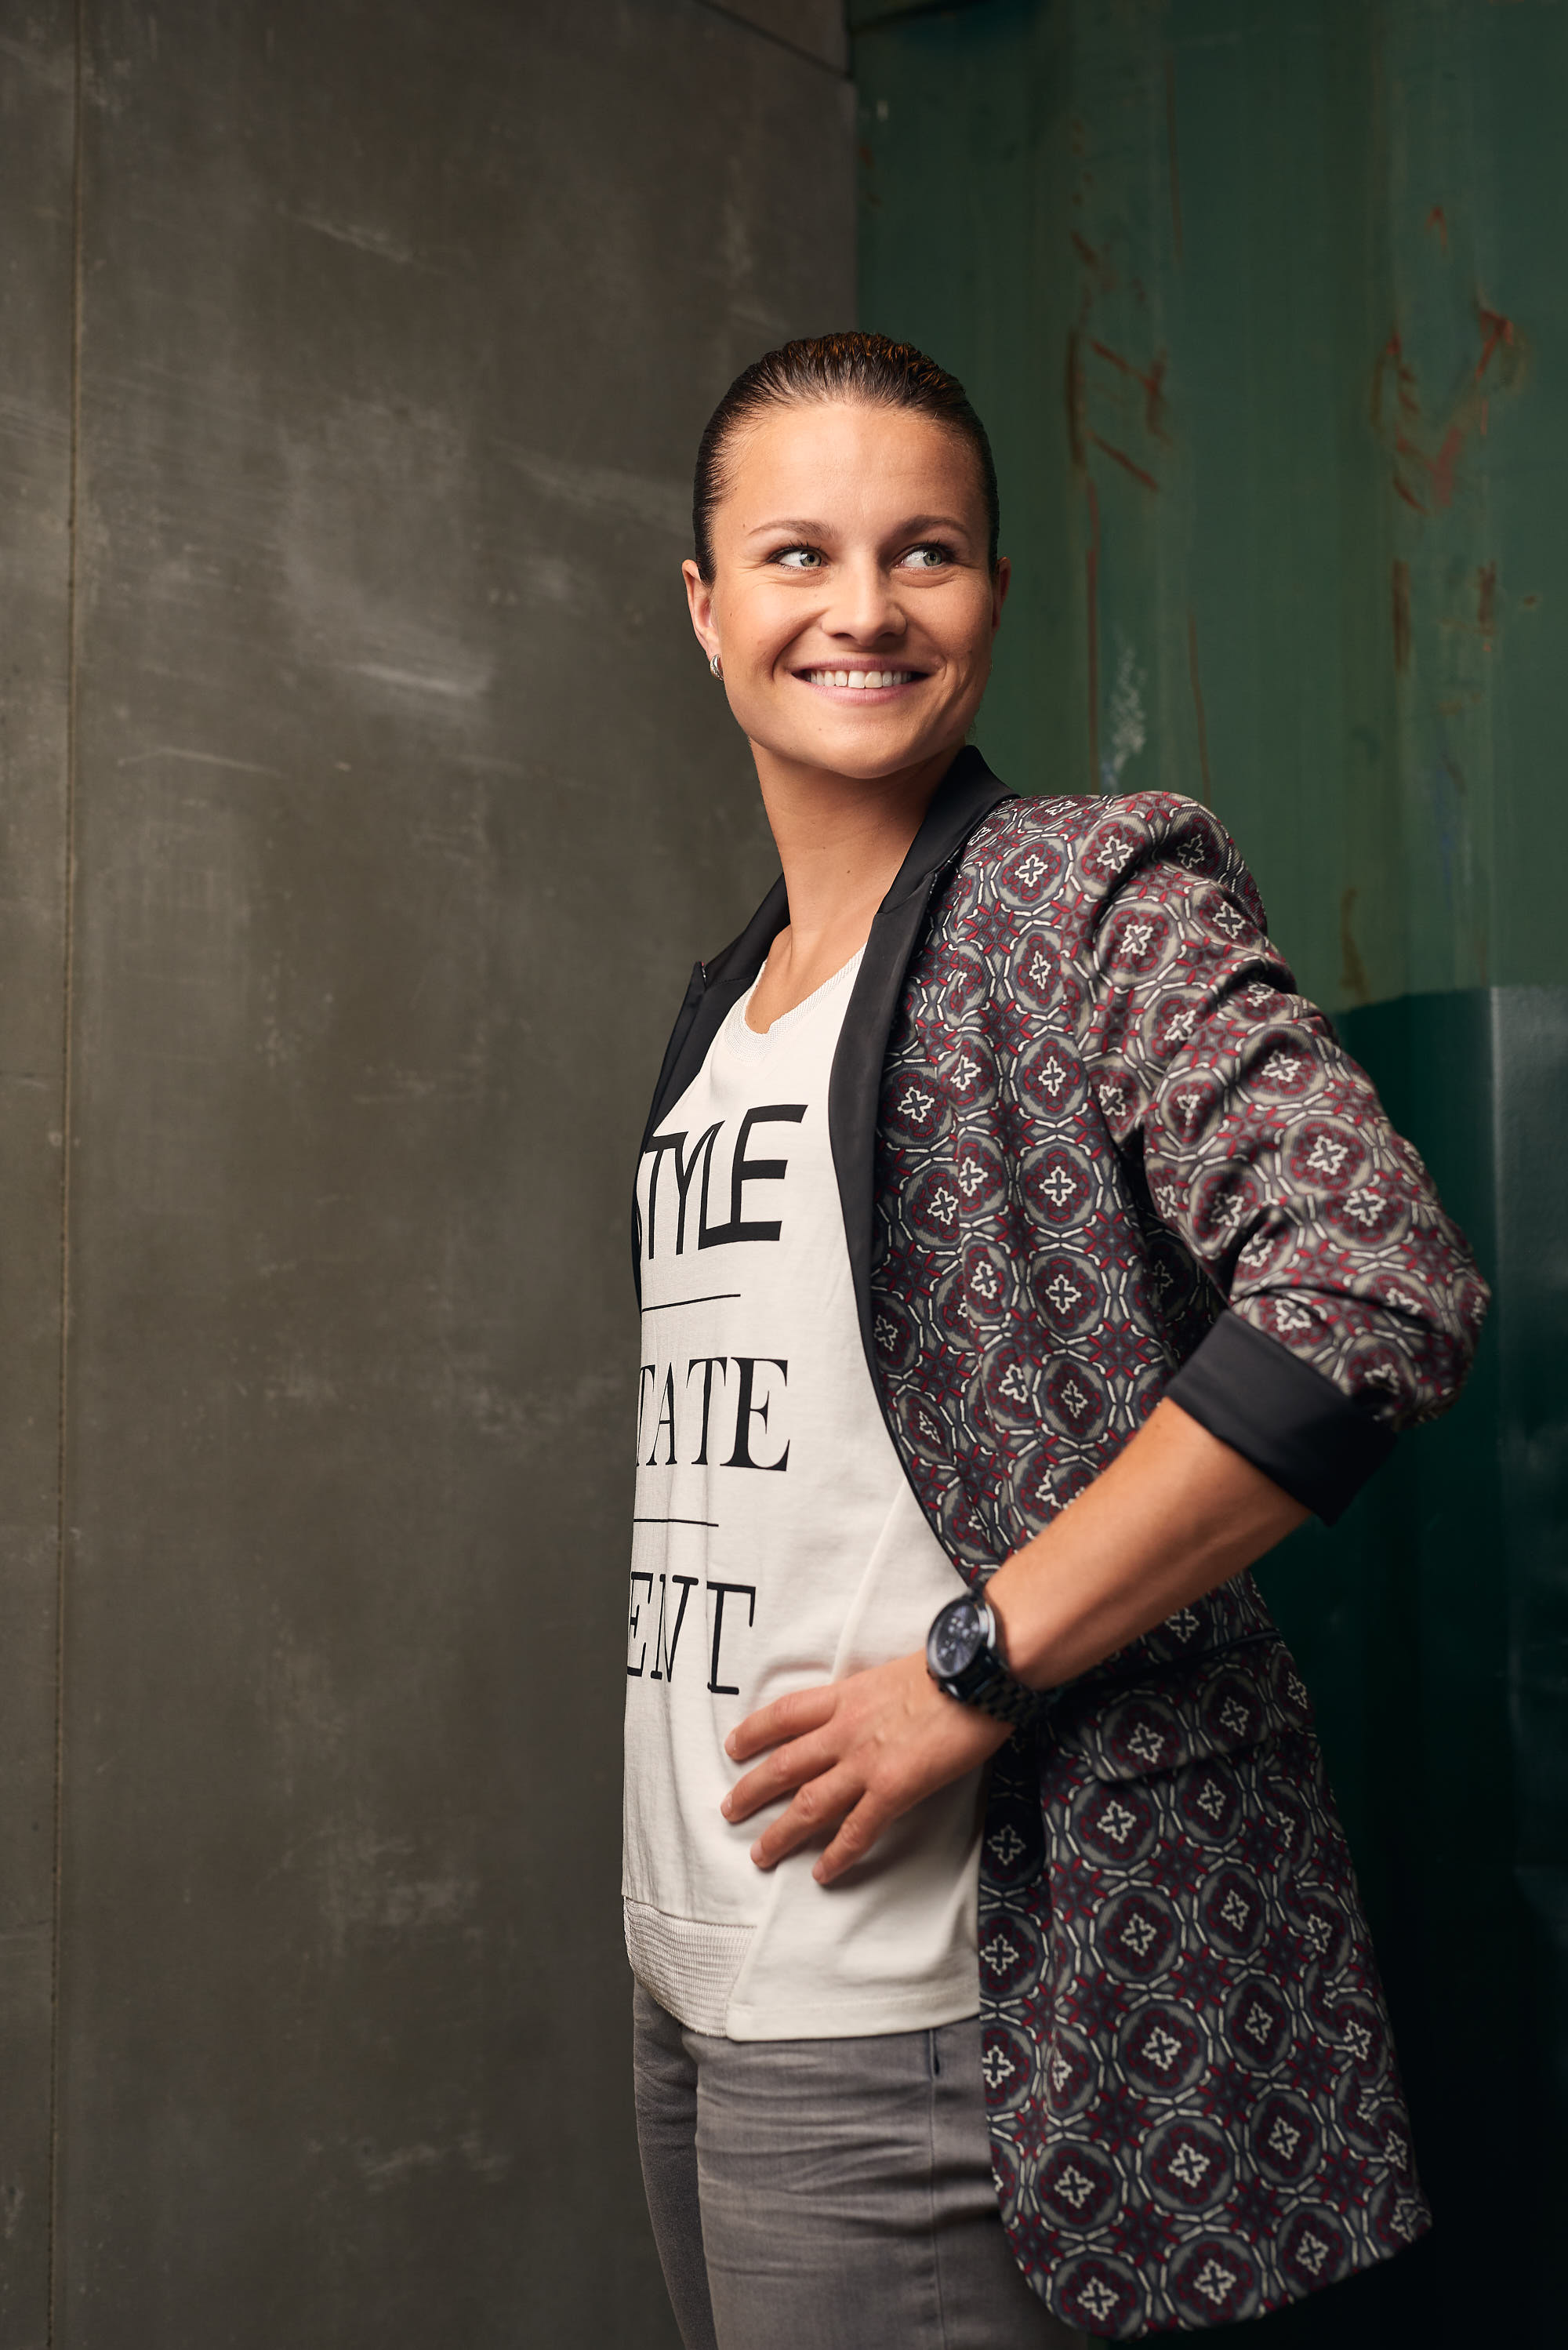 Dutch football star Sherida Spitse for Expresso fashion